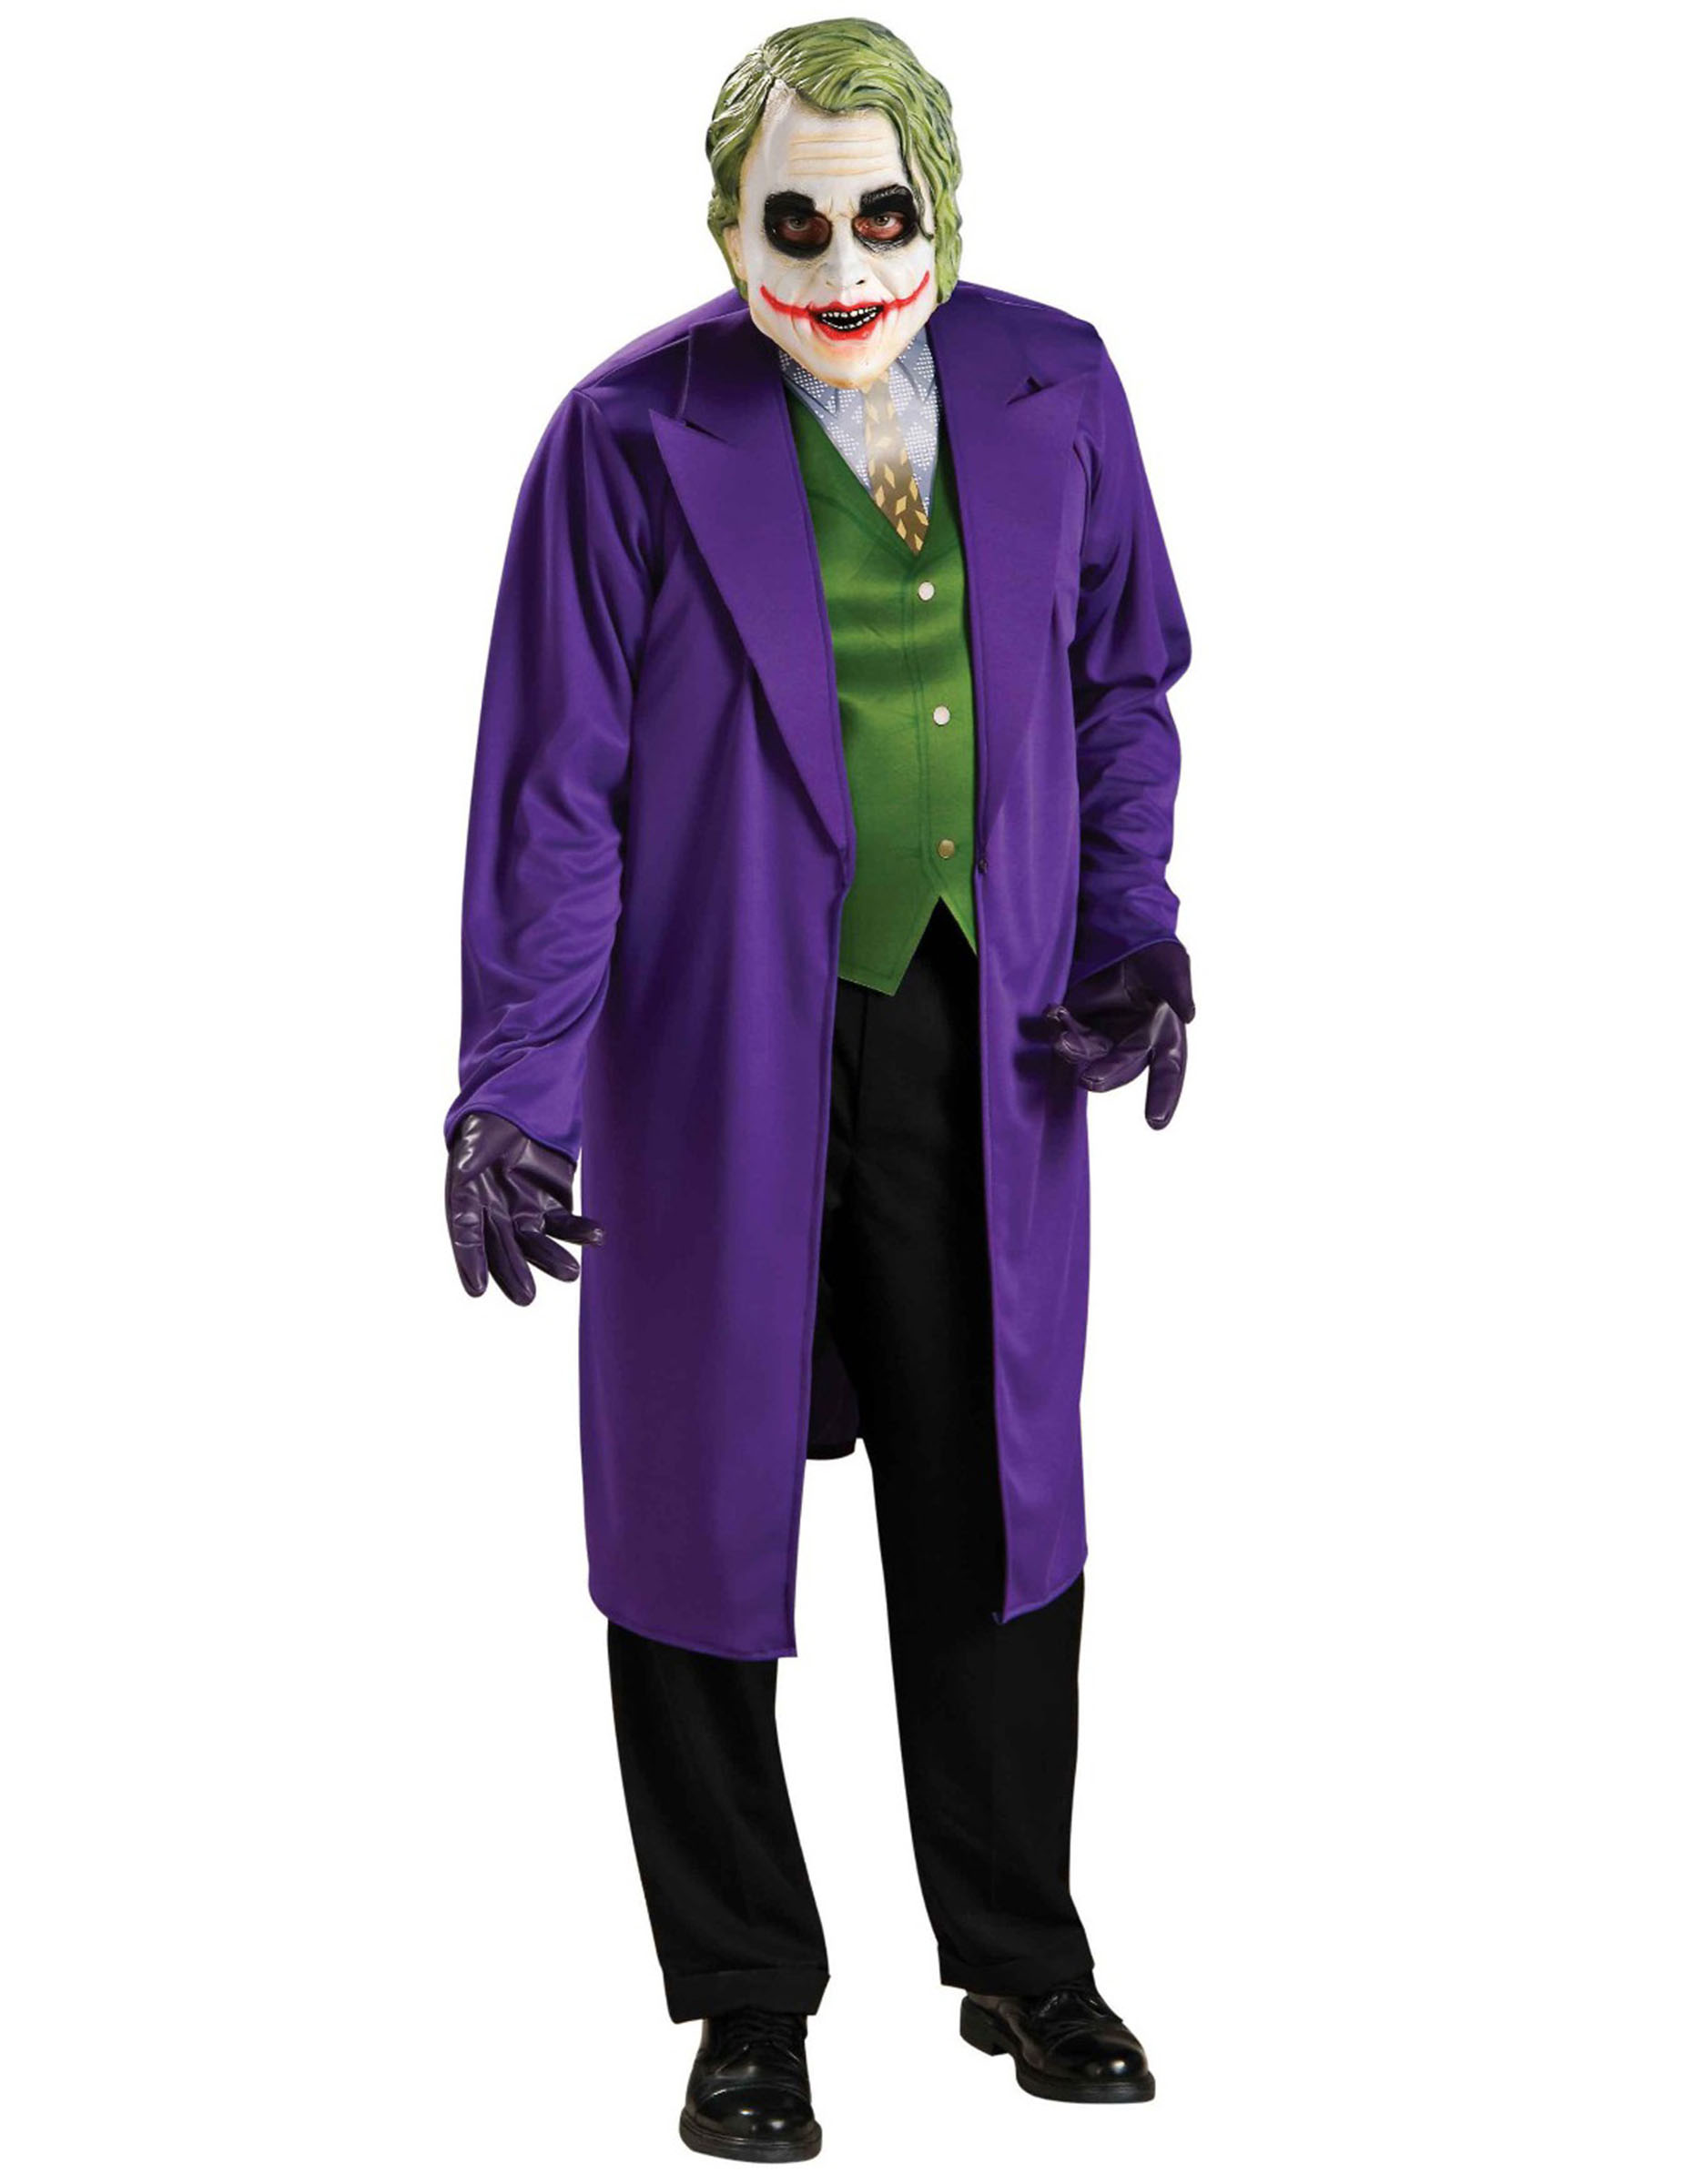 d guisement classique joker the dark knight adulte achat de d guisements adultes sur vegaoopro. Black Bedroom Furniture Sets. Home Design Ideas